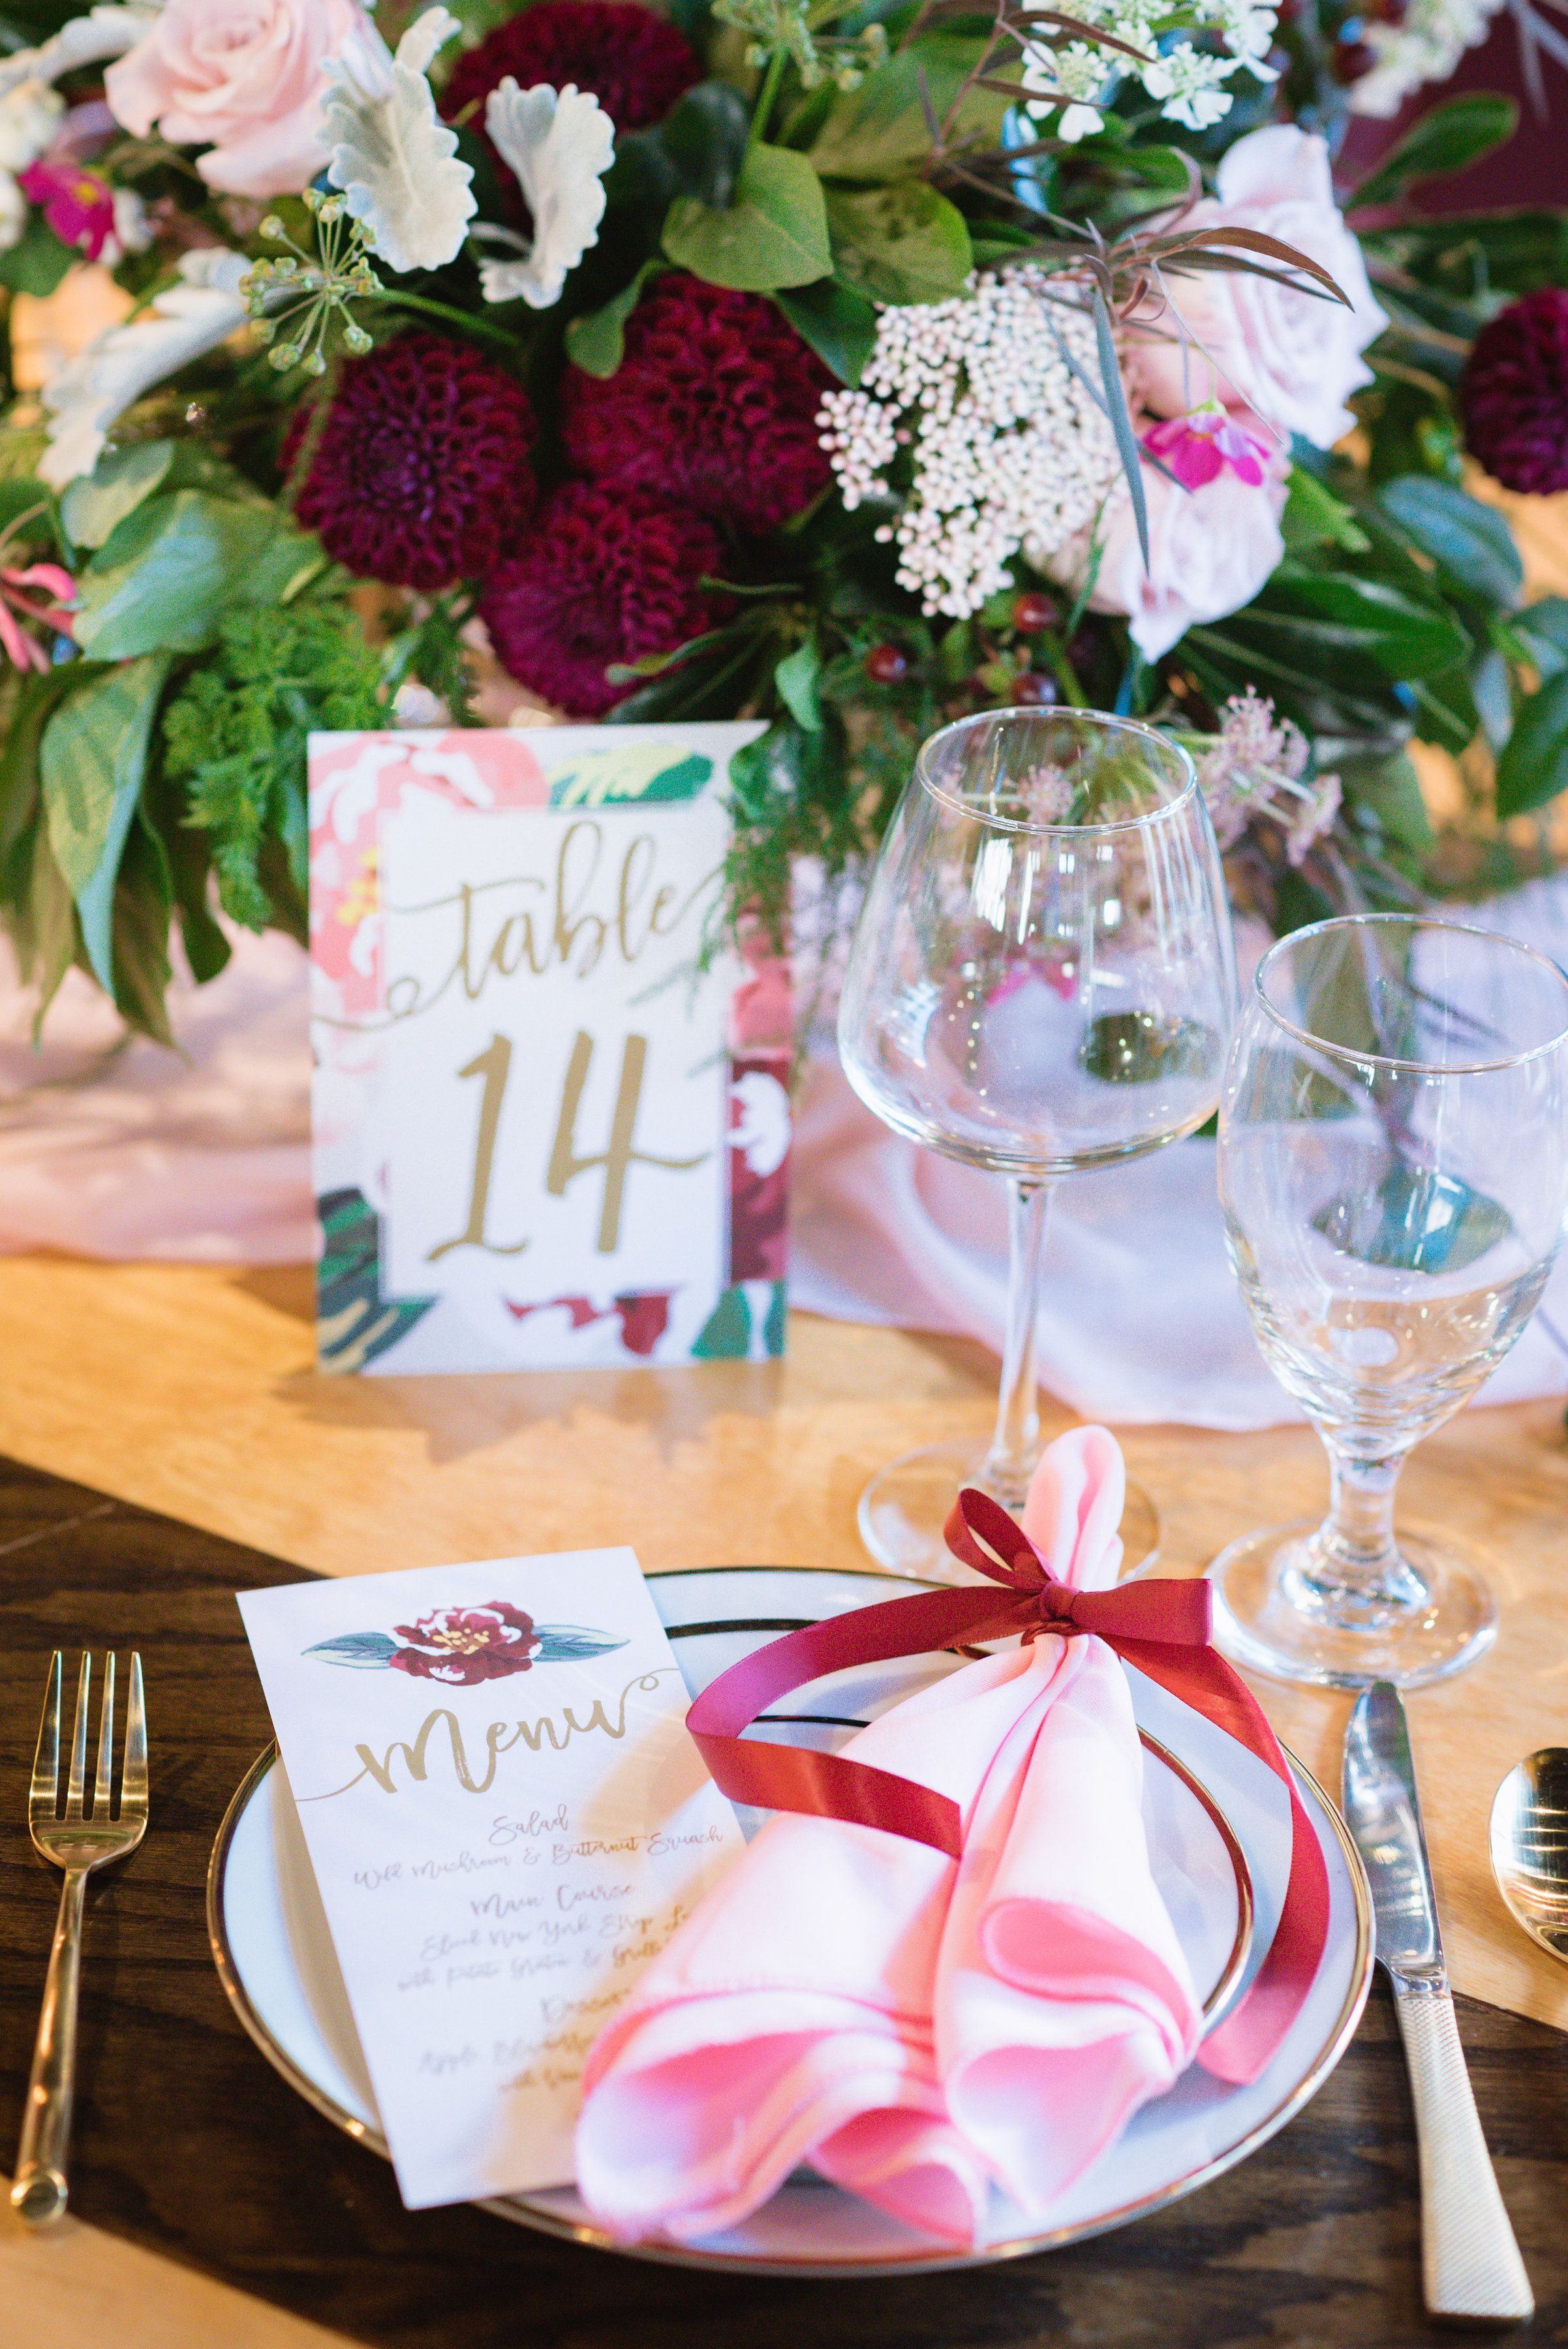 Pink and maroon wedding decor  Pink and Burgundy Fall Wedding Ideas Featured at a Wine Bar